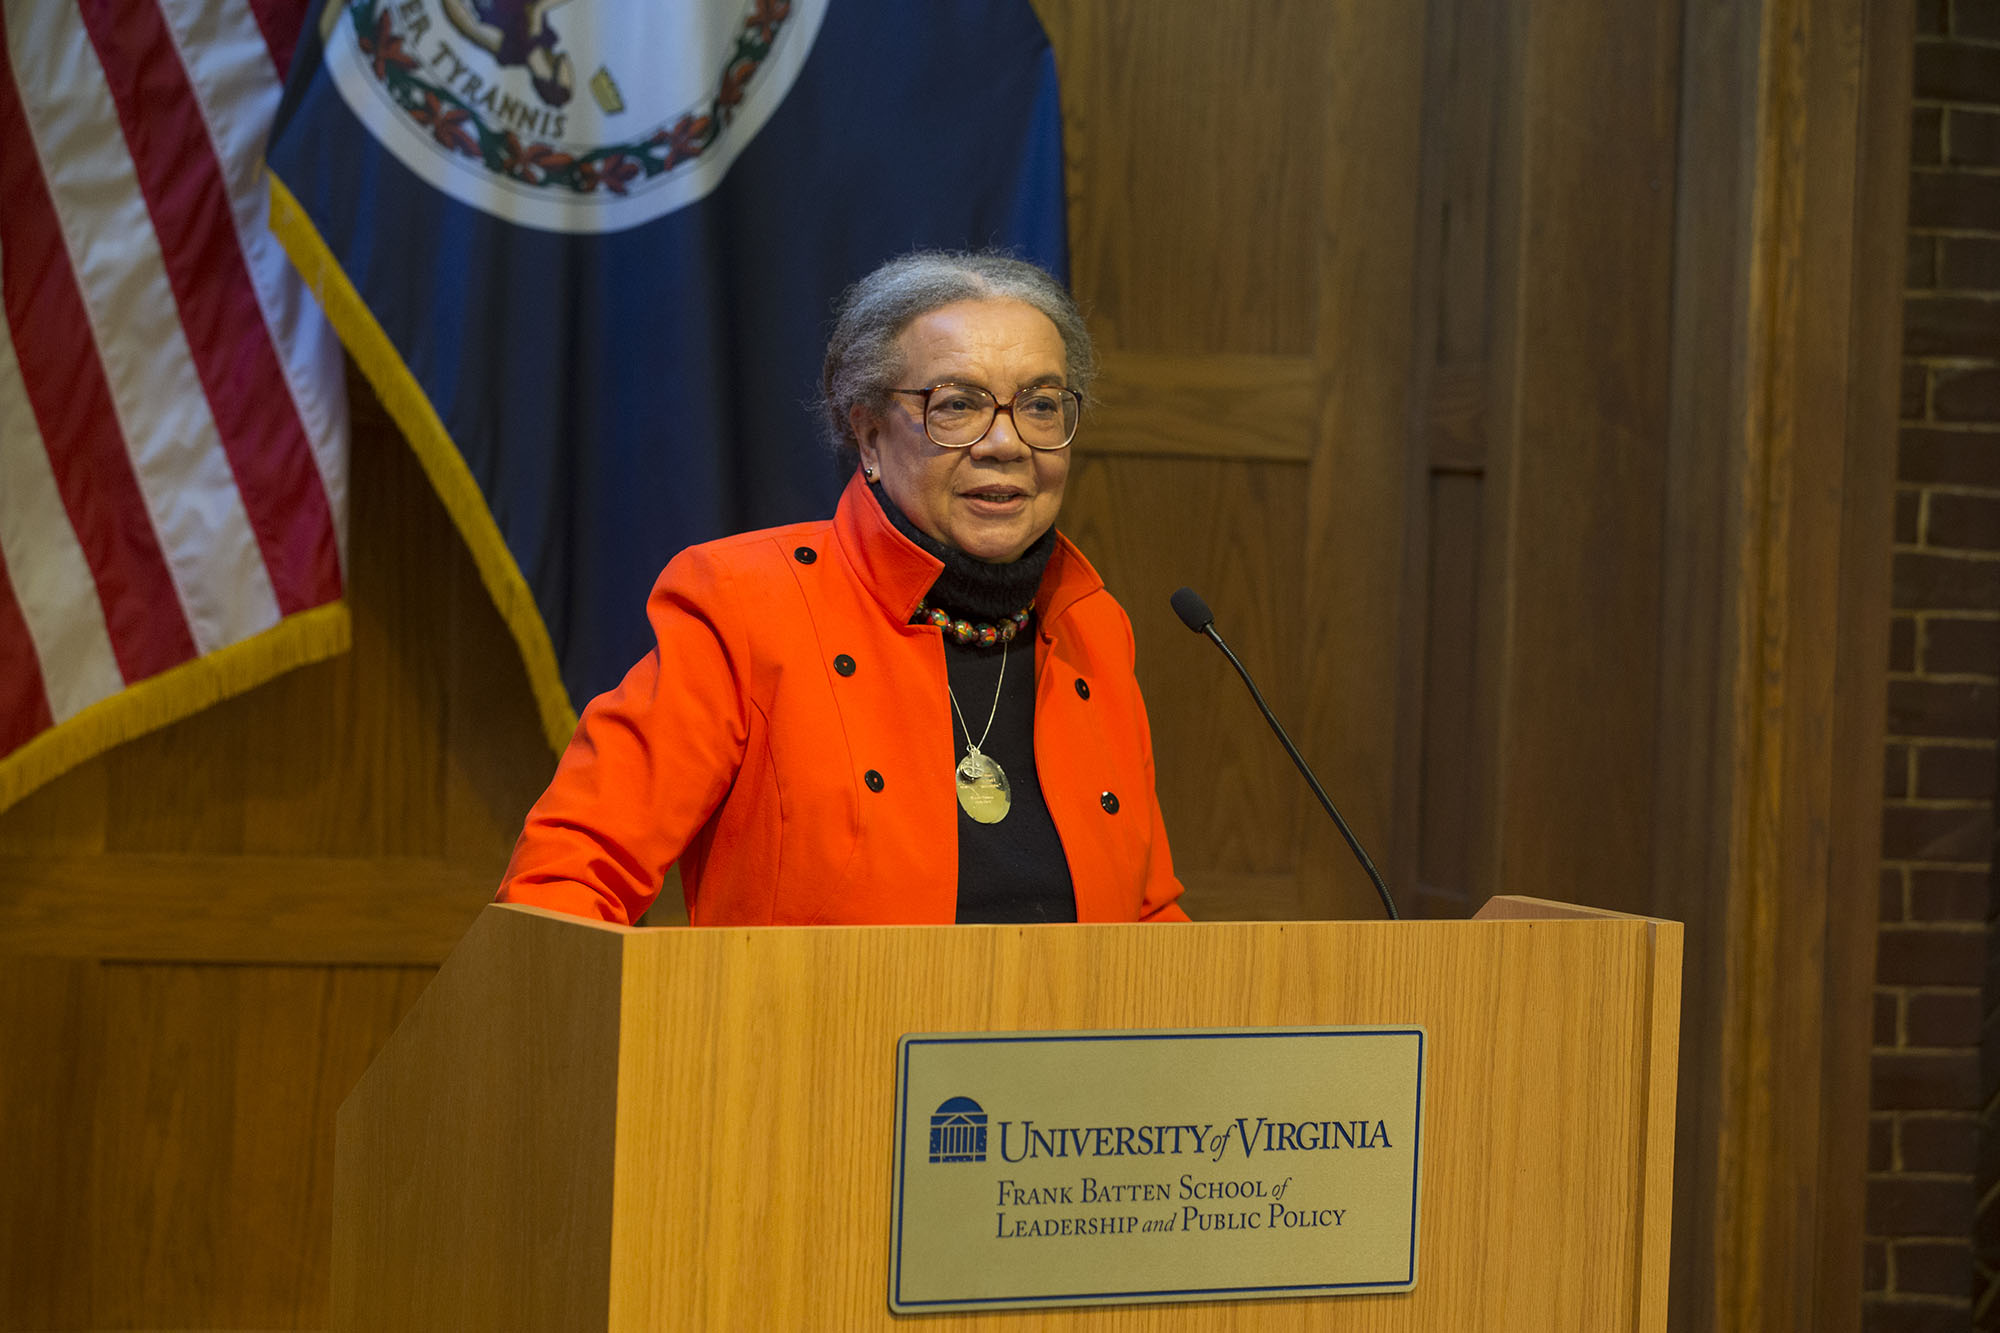 The Thomas Jefferson Foundation Medalist in Citizen Leadership, Marian Wright Edelman, said she hoped her Children's Defense Fund would be defunct by now.